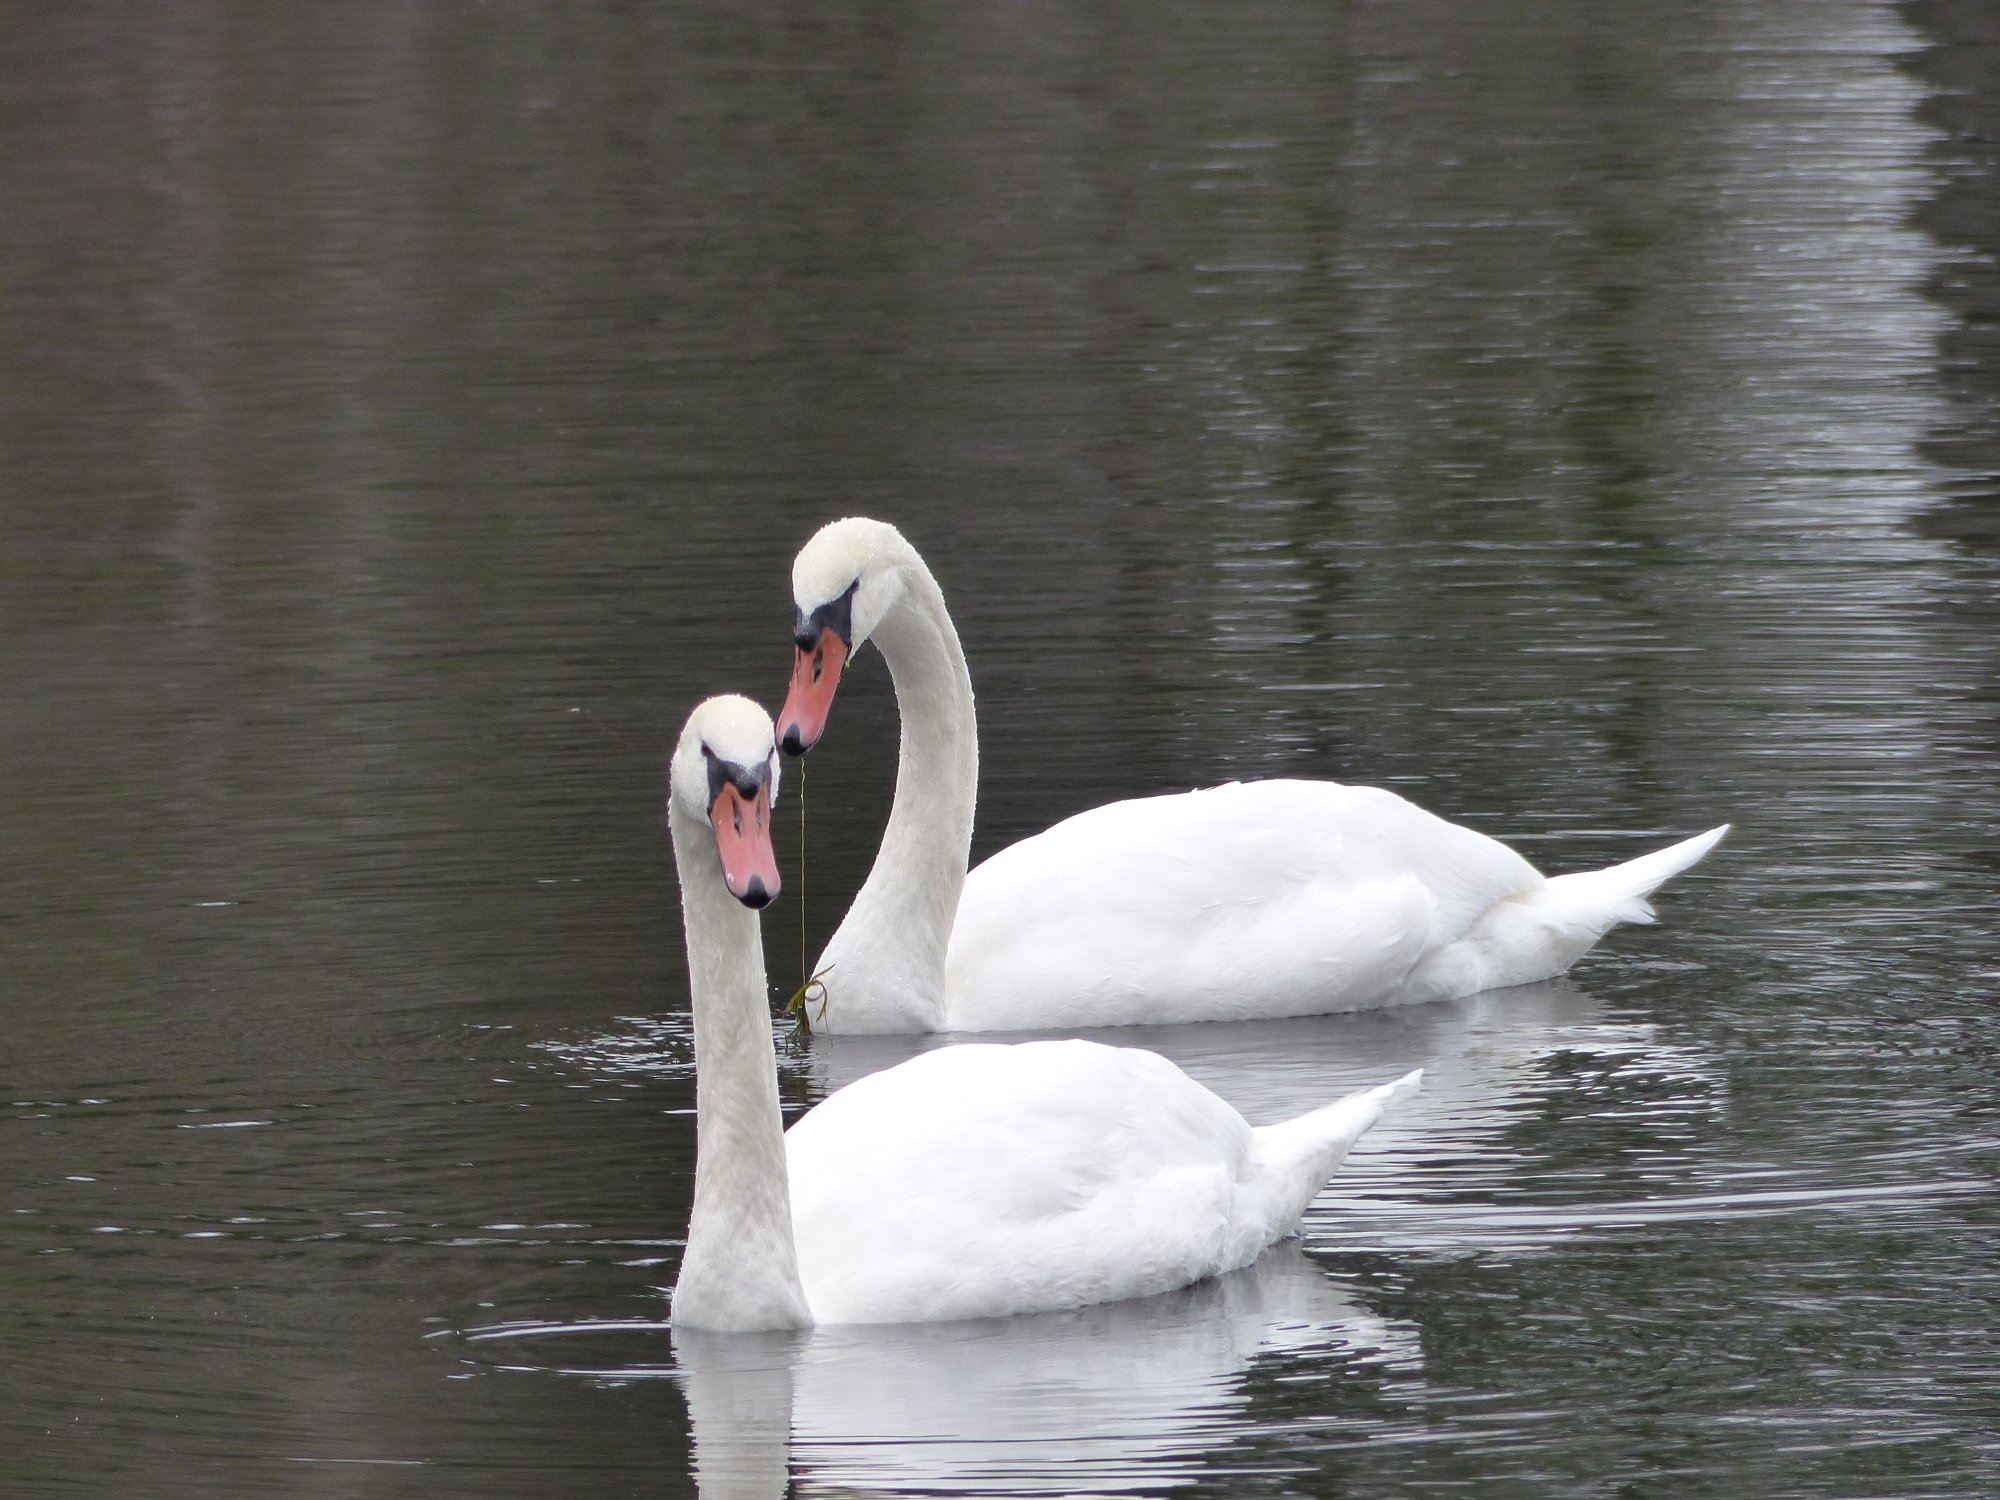 Swans at Pond 02